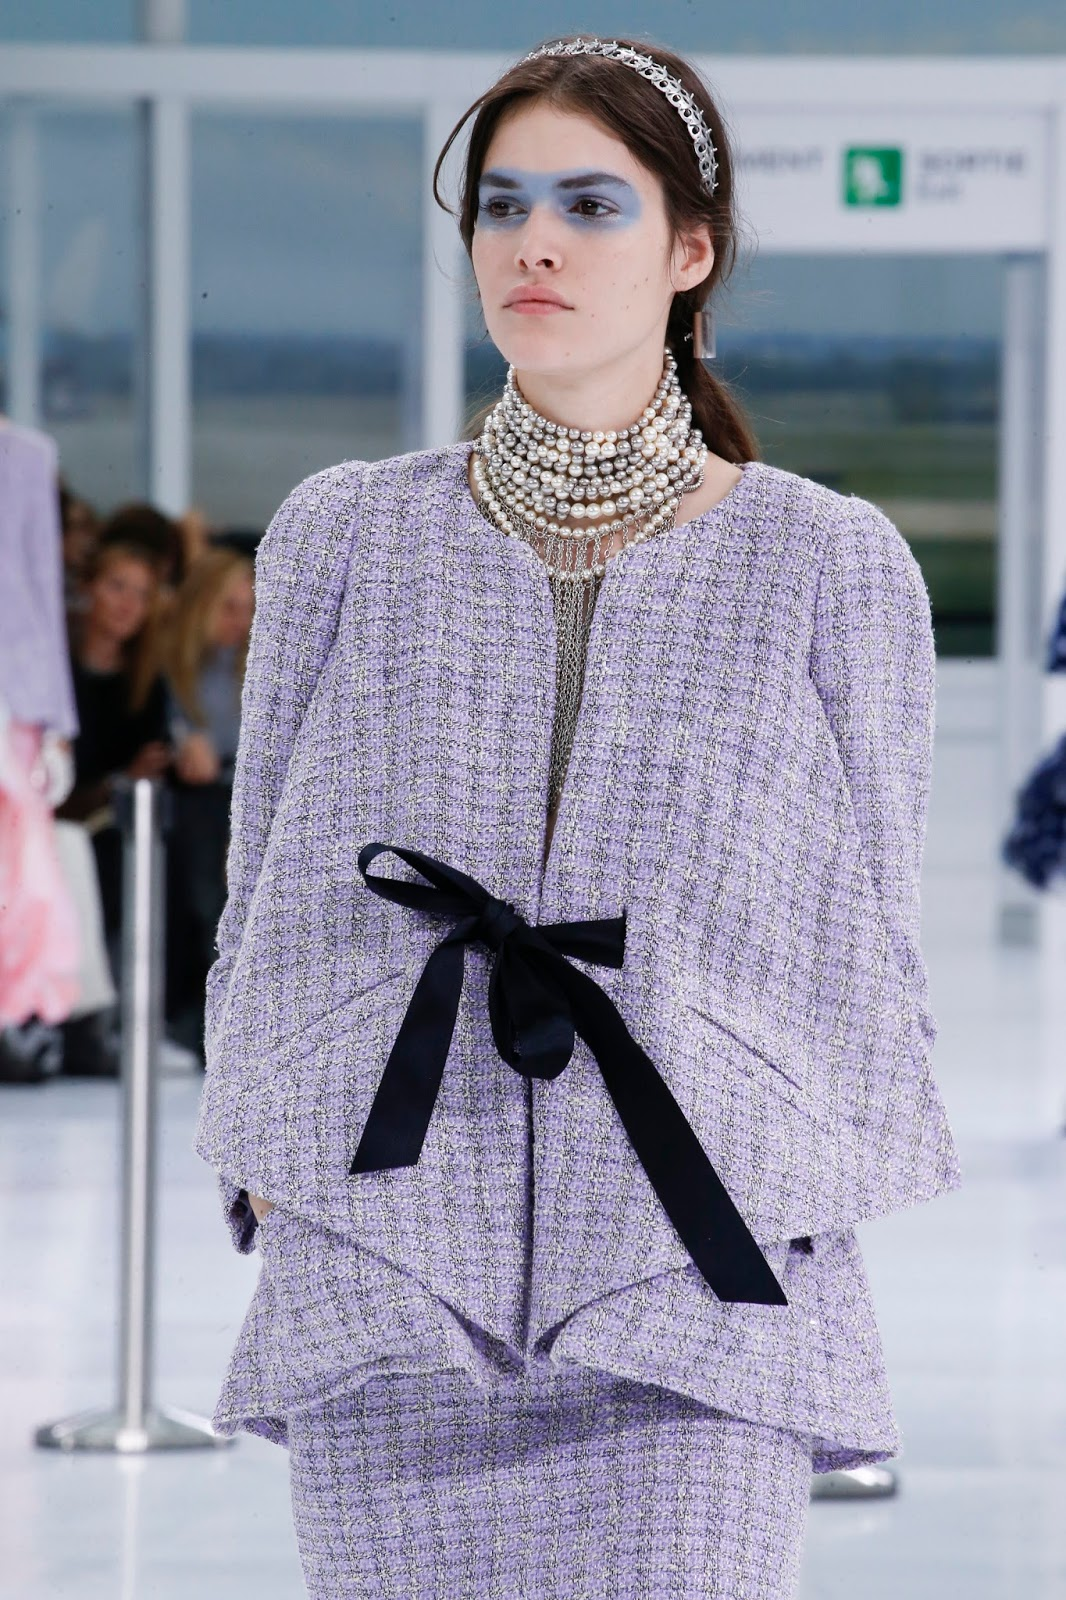 Spring/Summer 2016 trend report / Chanel SS16 / ribbons & bows via www.fashionedbylove.co.uk